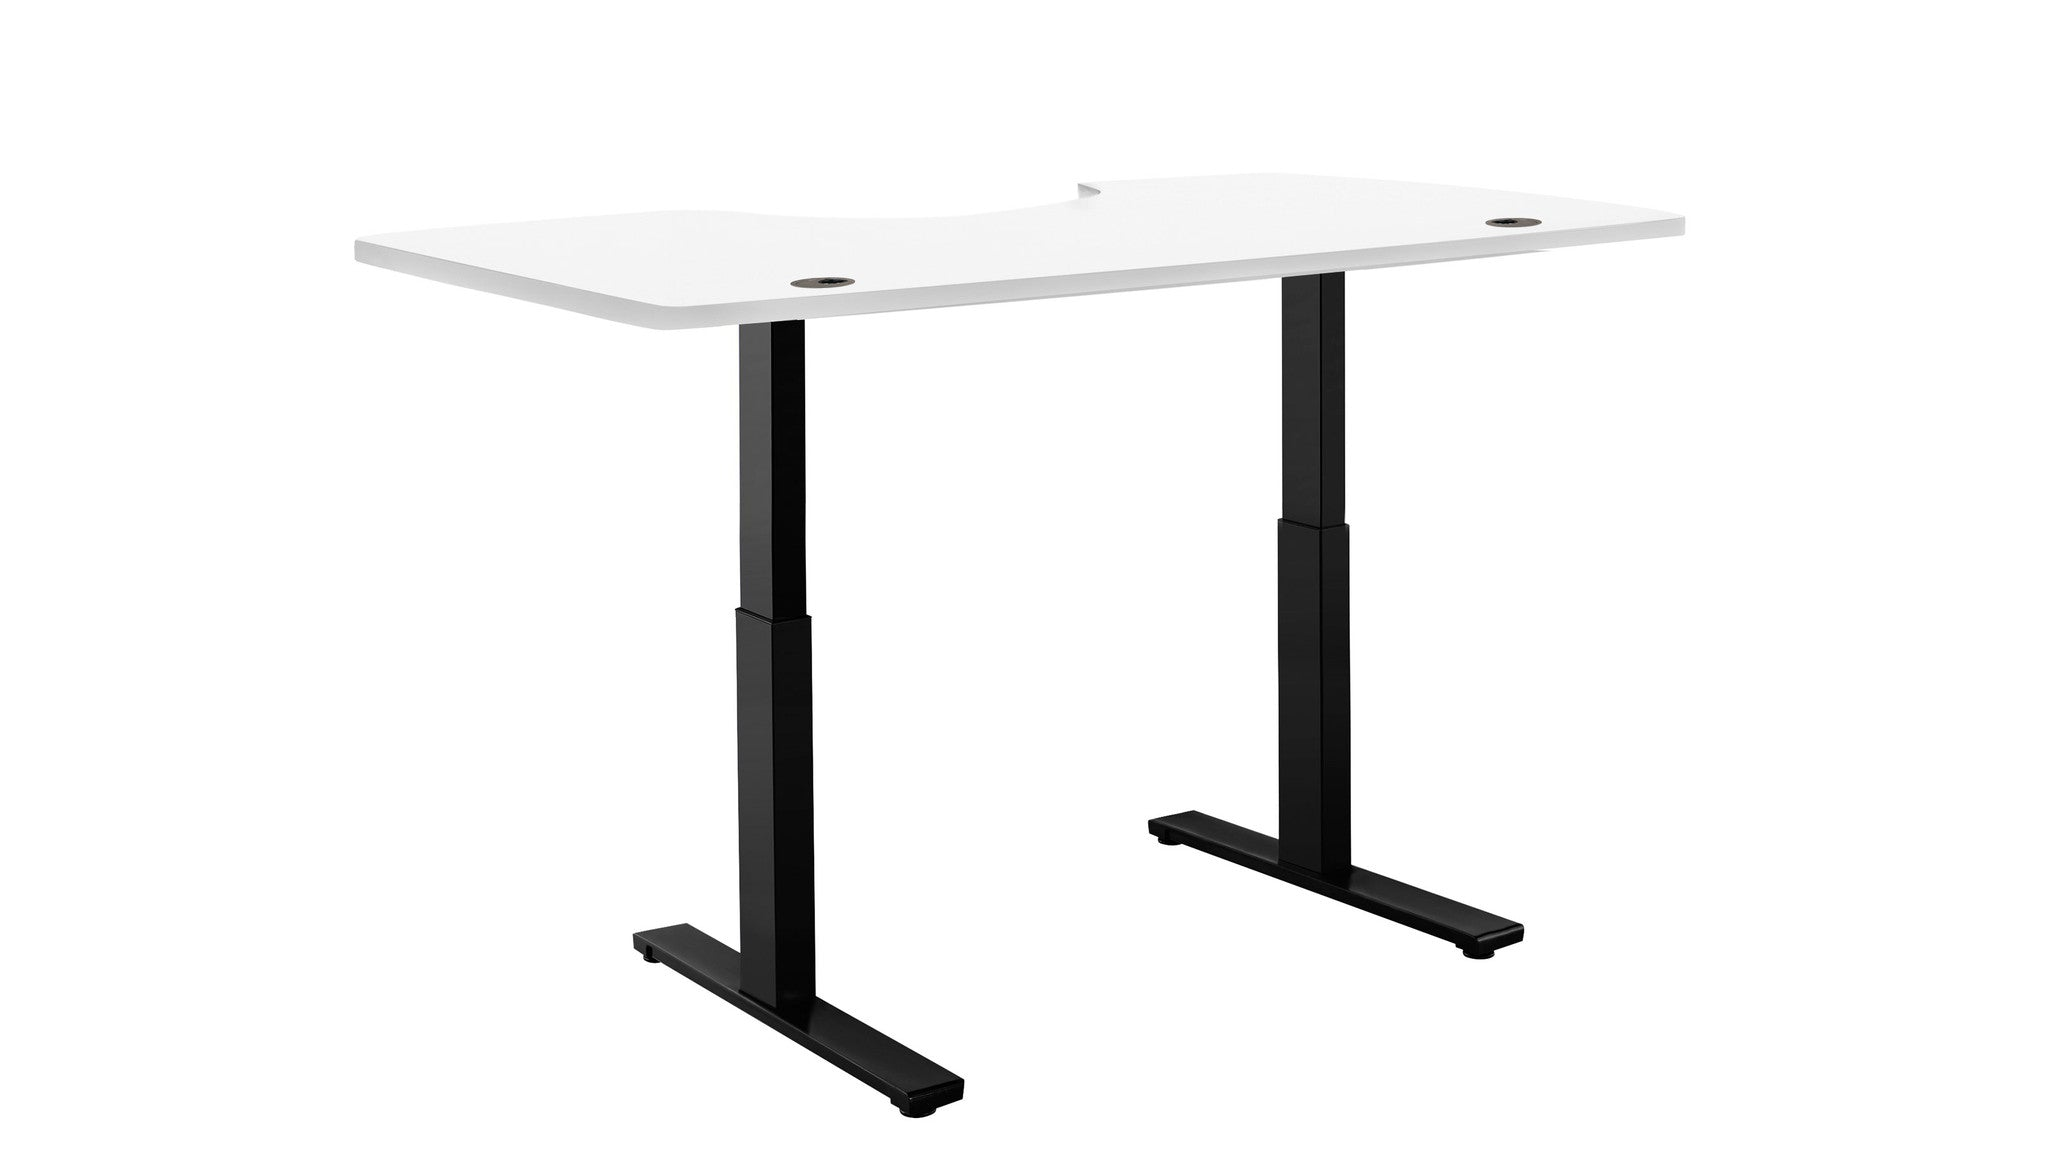 news and standing announce home adjustable ergo office is electric ruishi height a proud foldable smart new desk furniture to pre